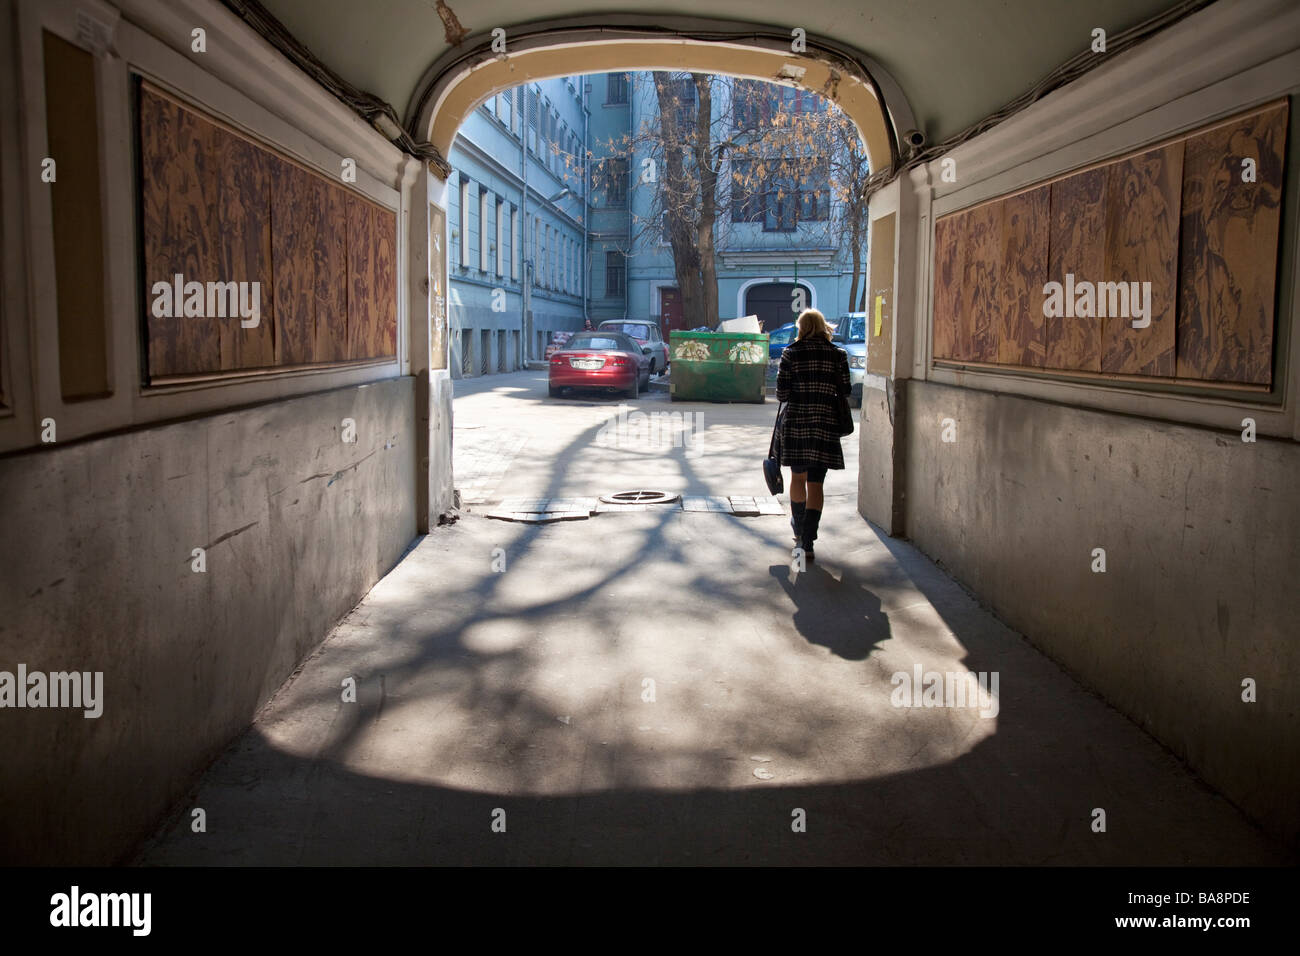 Gate leading to Mikhail Bulgakov house. Mikhail Bulgakov is a Russian writer, author of ' Master and Margarita', - Stock Image